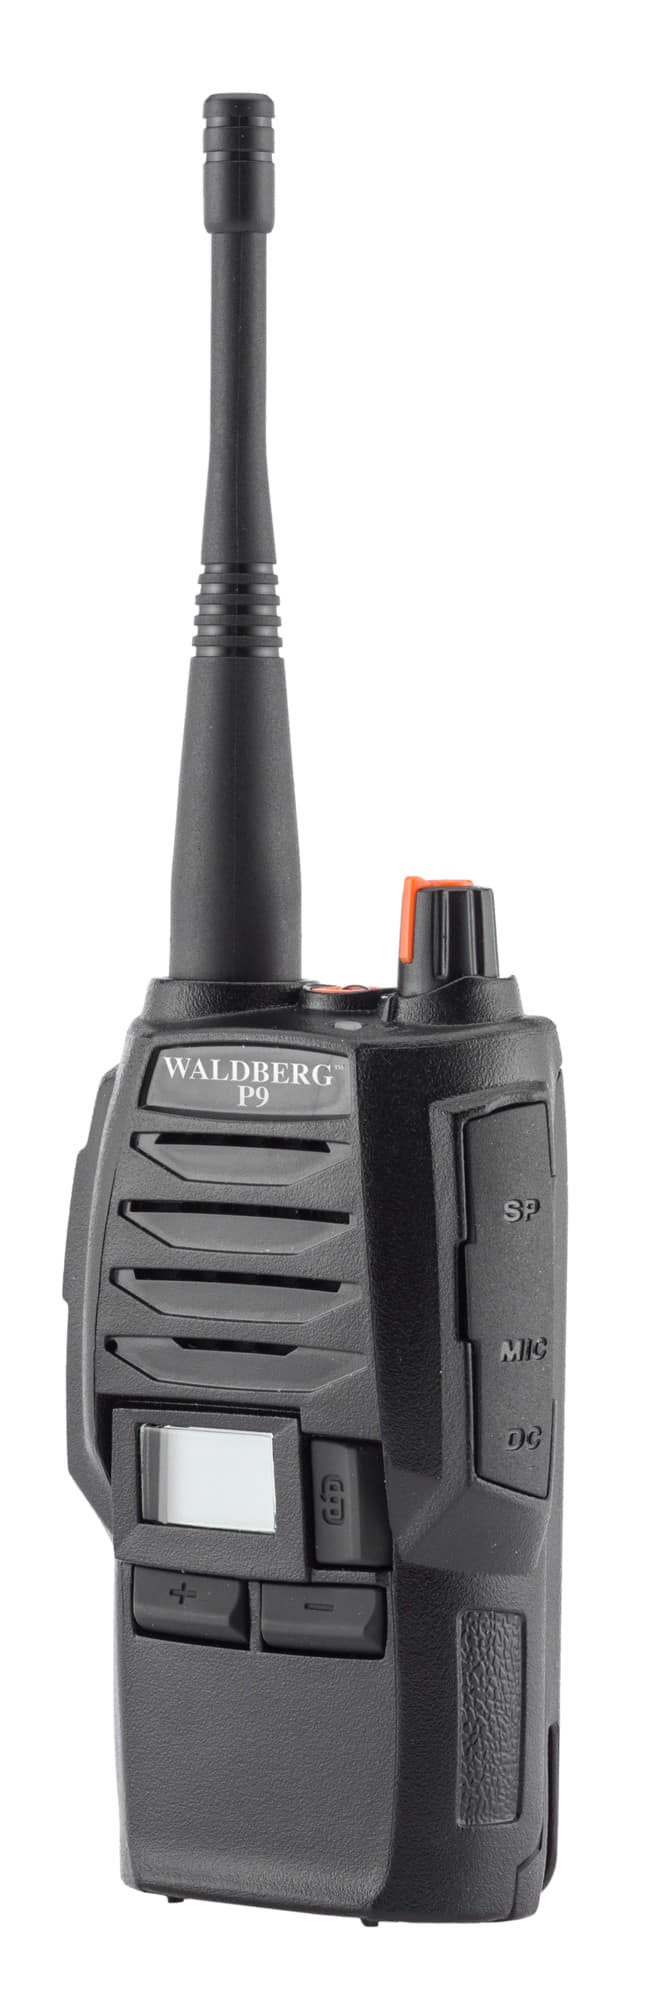 A69235-2 Talkie-Walkie Waldberg P9 PRO V2 - A69235